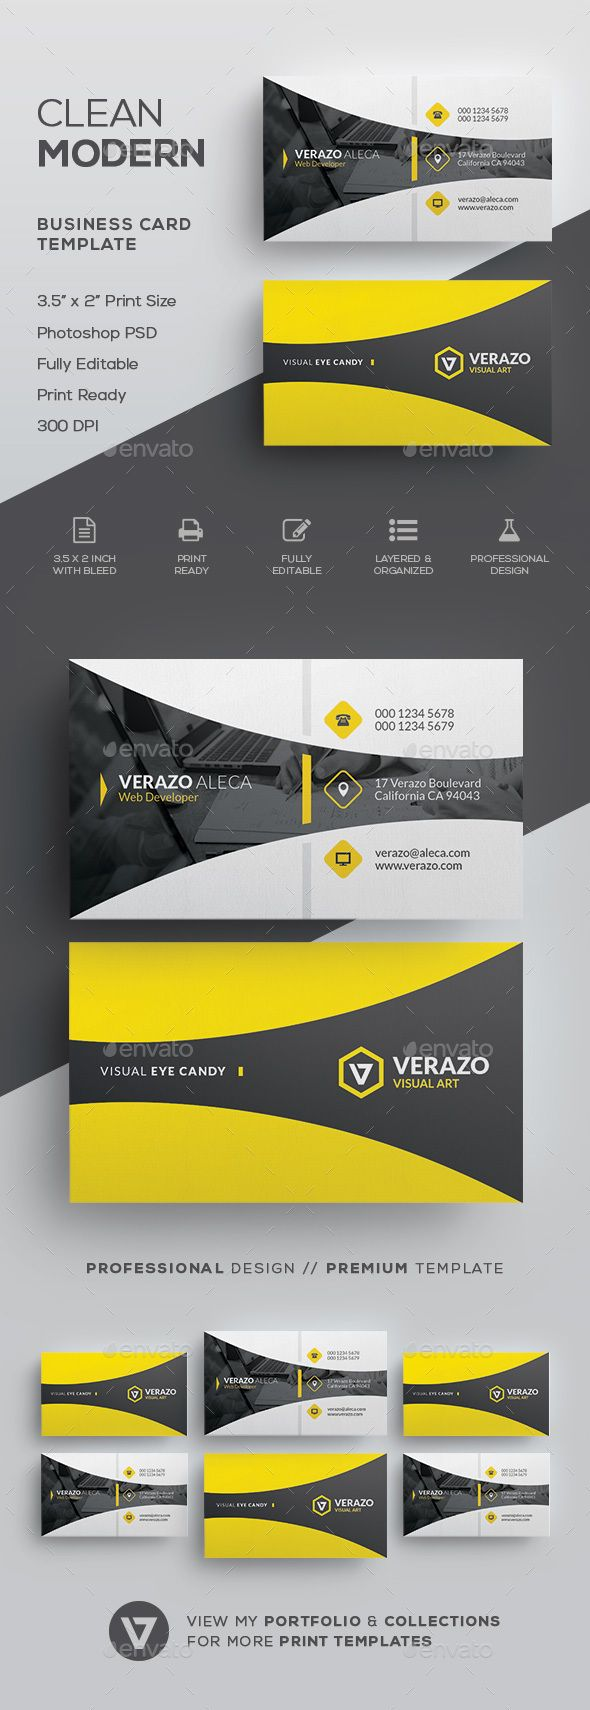 Clean Modern Business Card Template - Corporate Business Cards Download here : https://graphicriver.net/item/clean-modern-business-card-template/19704911?s_rank=15&ref=Al-fatih